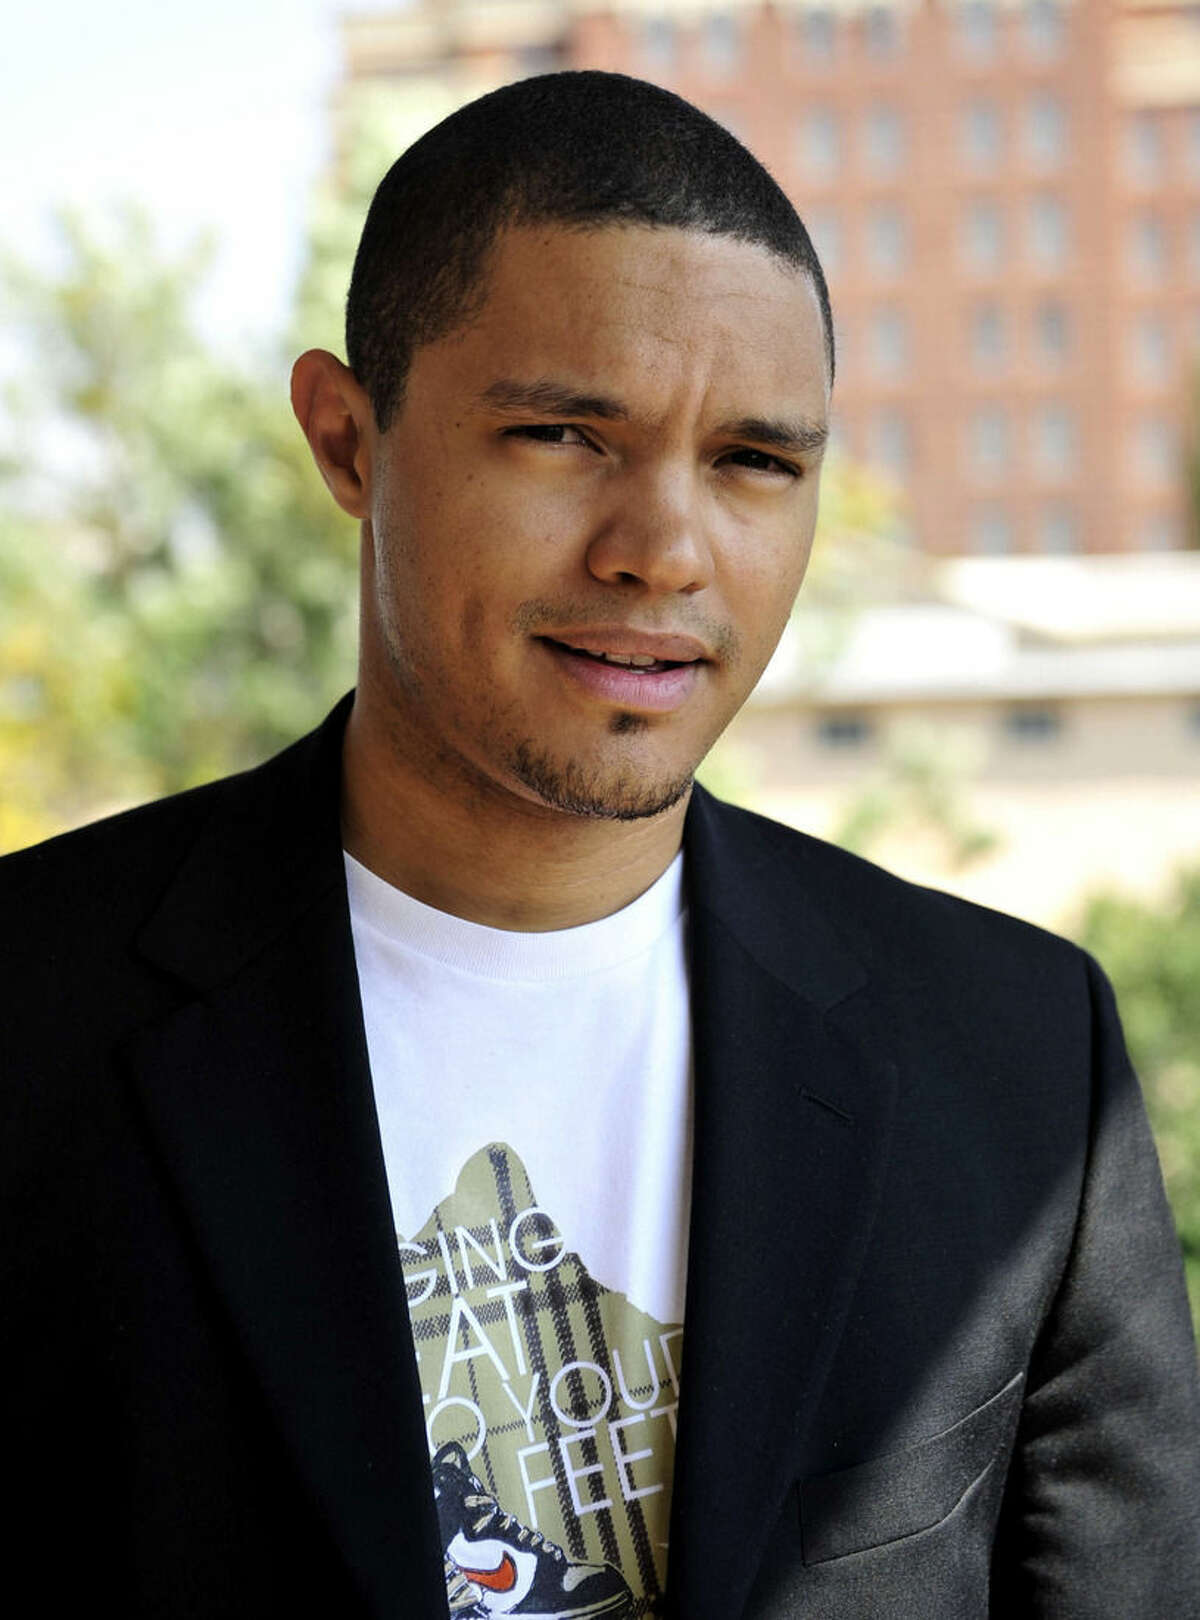 """In this photo taken Oct. 27 2009 South African comedian Trevor Noah is photographed during an interview. Trevor Noah, a 31-year-old comedian from South Africa who has contributed to """"The Daily Show"""" a handful of times during the past year, will become Jon Stewart's replacement as host, Comedy Central announced Monday March 30, 2015. Noah was chosen a little more than a month after Stewart unexpectedly announced he was leaving """"The Daily Show"""" following 16 years as the show's principal voice. (AP Photo/Bongiwe Mchunu-The Star) SOUTH AFRICA OUT NO SALES NO ARCHIVE"""